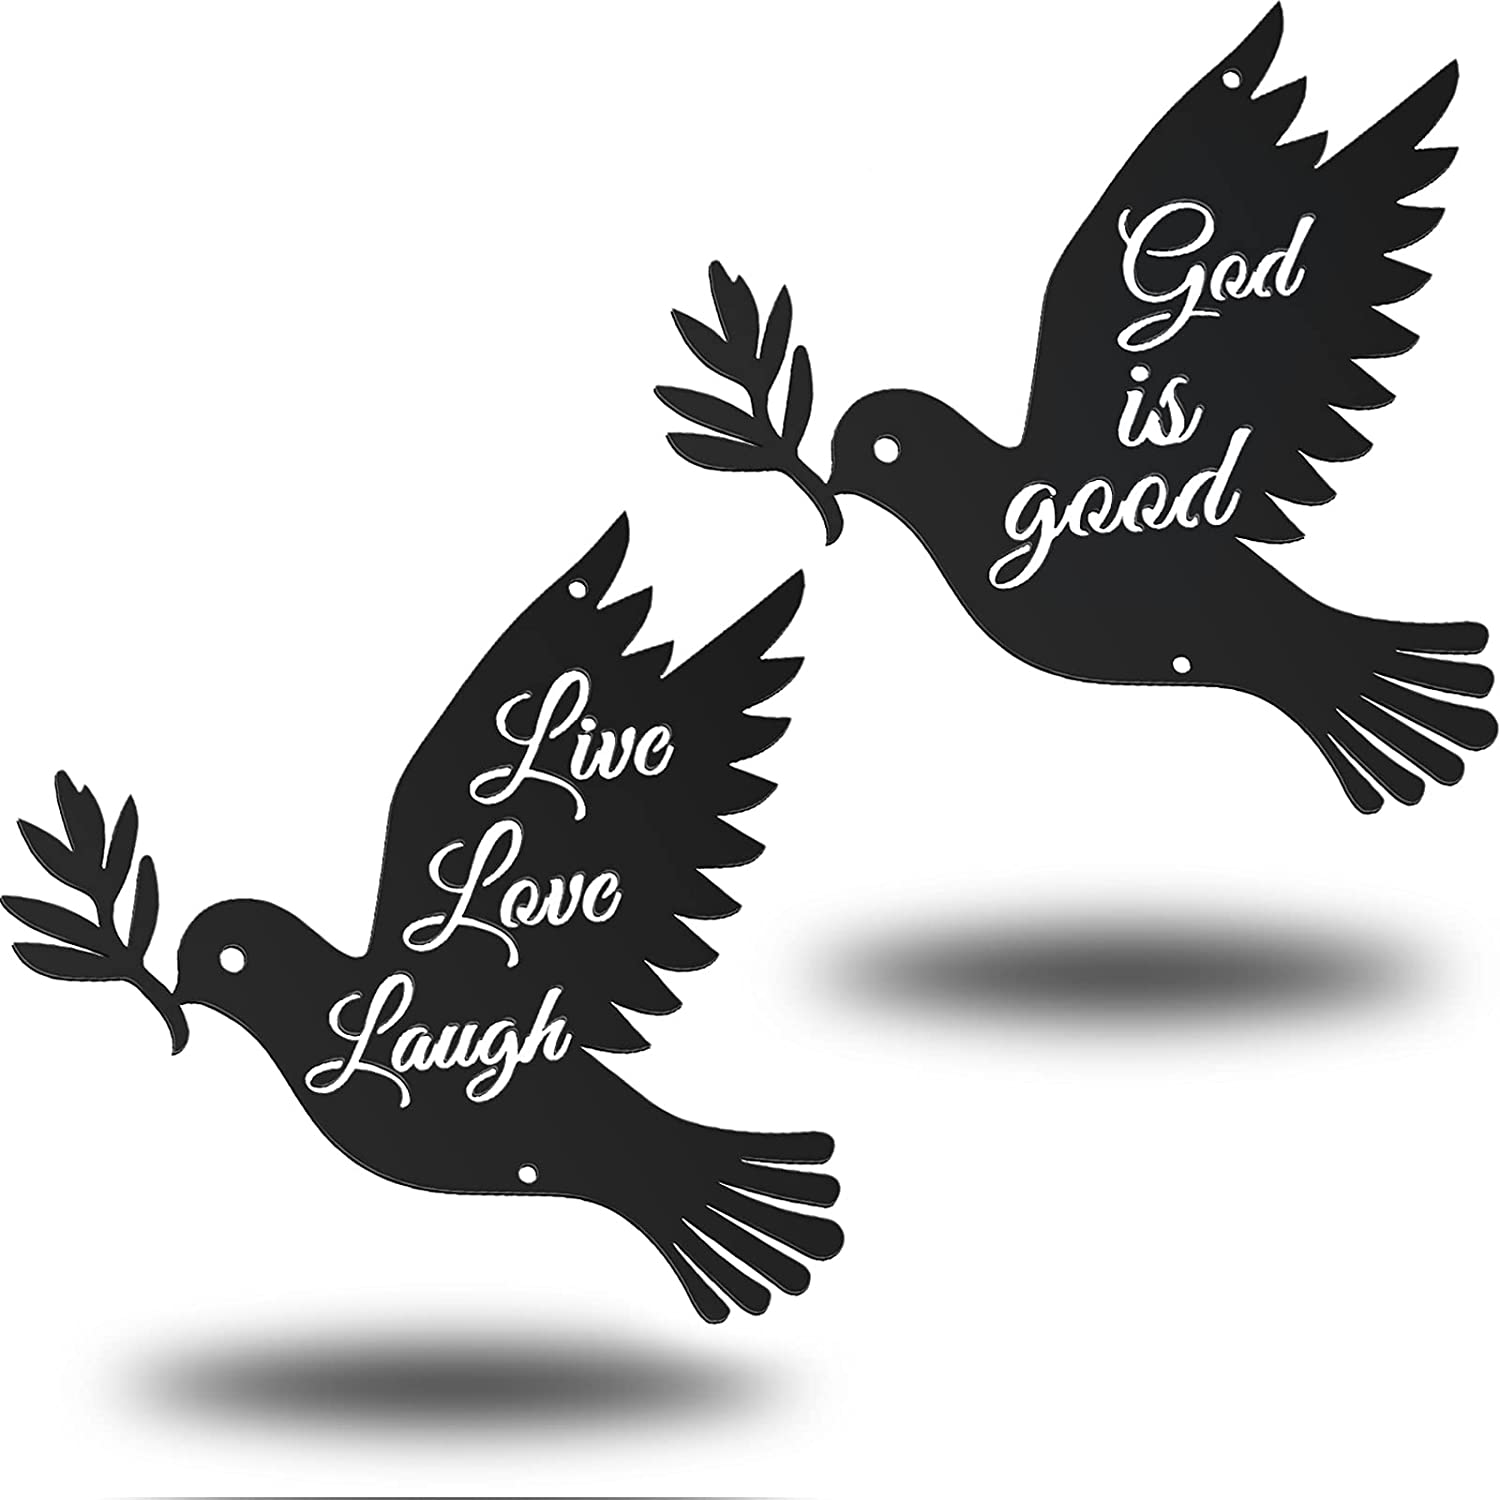 2 Pieces Metal Wall Hanging Decor Inspirational Word Art Steel Roots Decor Metal Spiritual Decorations Dove of Peace Metal Art Wall Decor Hanging Live Love Laugh God is Good for Home Living Room